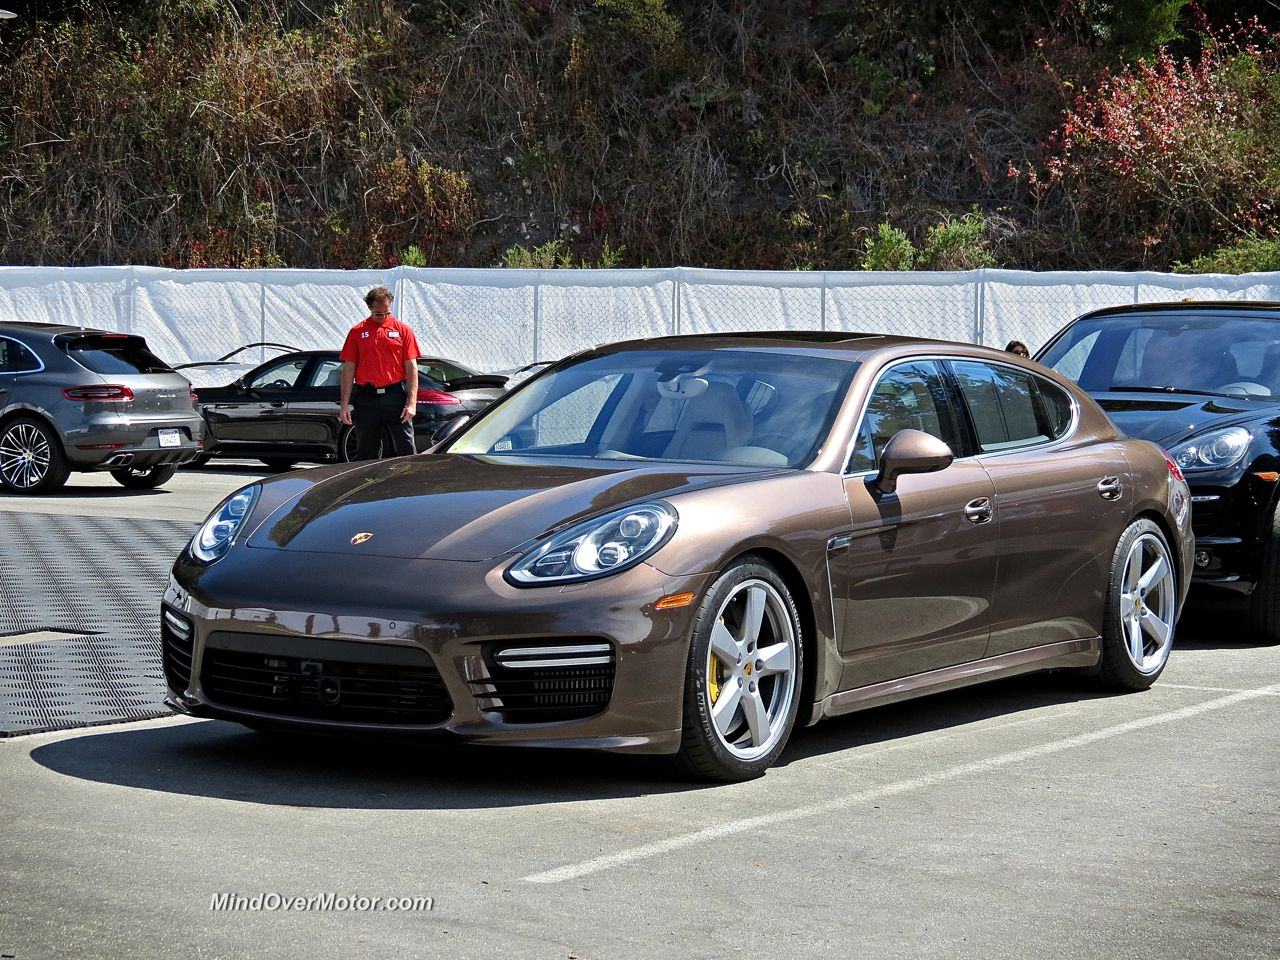 Porsche Panamera Turbo S Executive Front